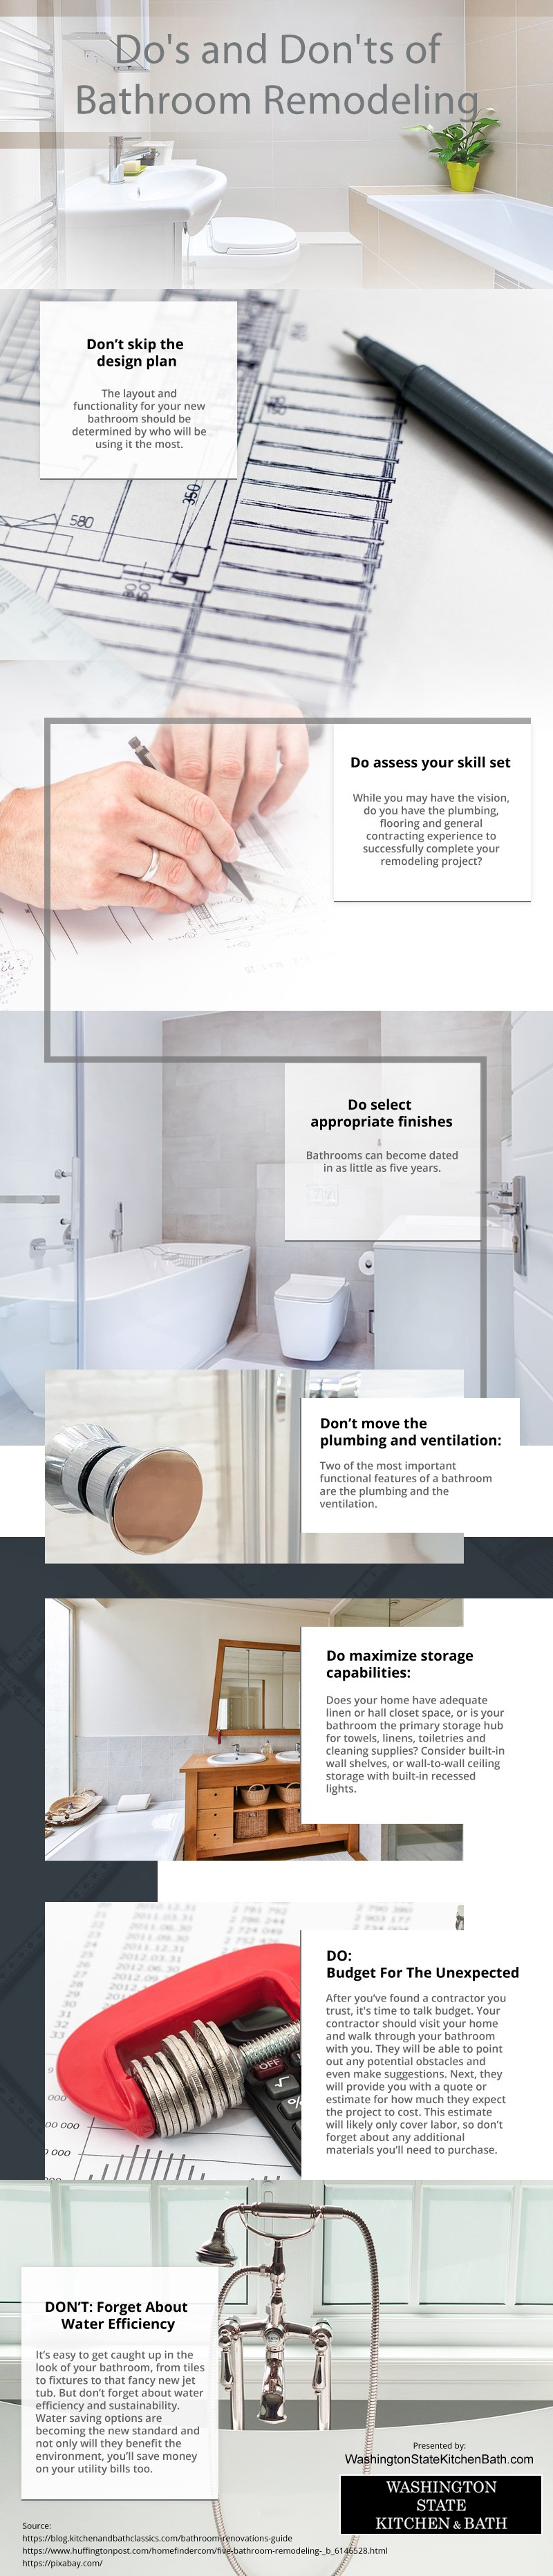 Dos-and-Don'ts-of-Bathroom-Remodel Infographic